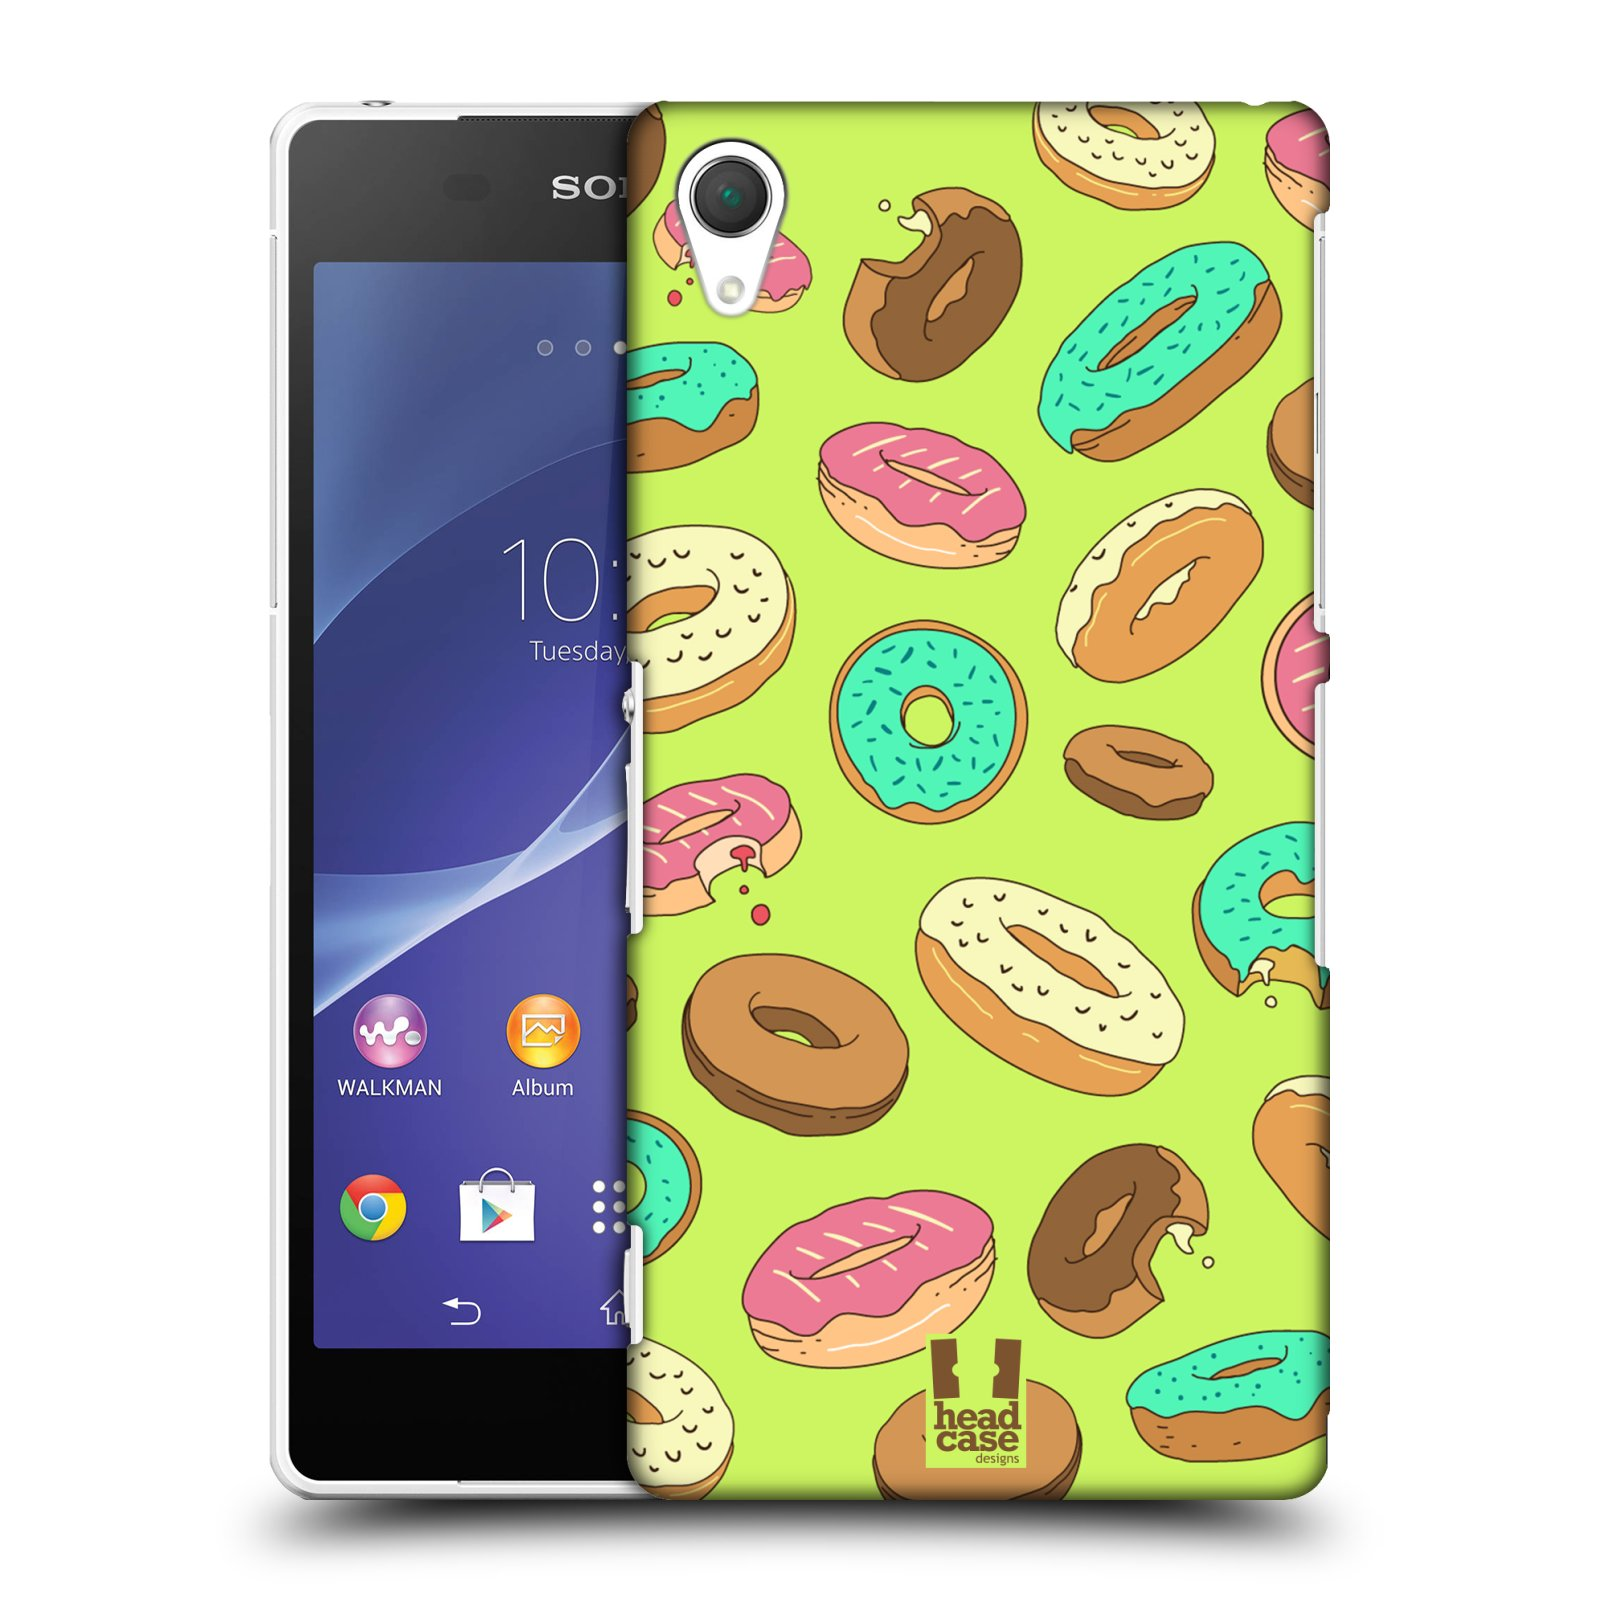 HEAD CASE DESIGNS DOUGHNUTS CASE COVER FOR SONY XPERIA Z2 D6503